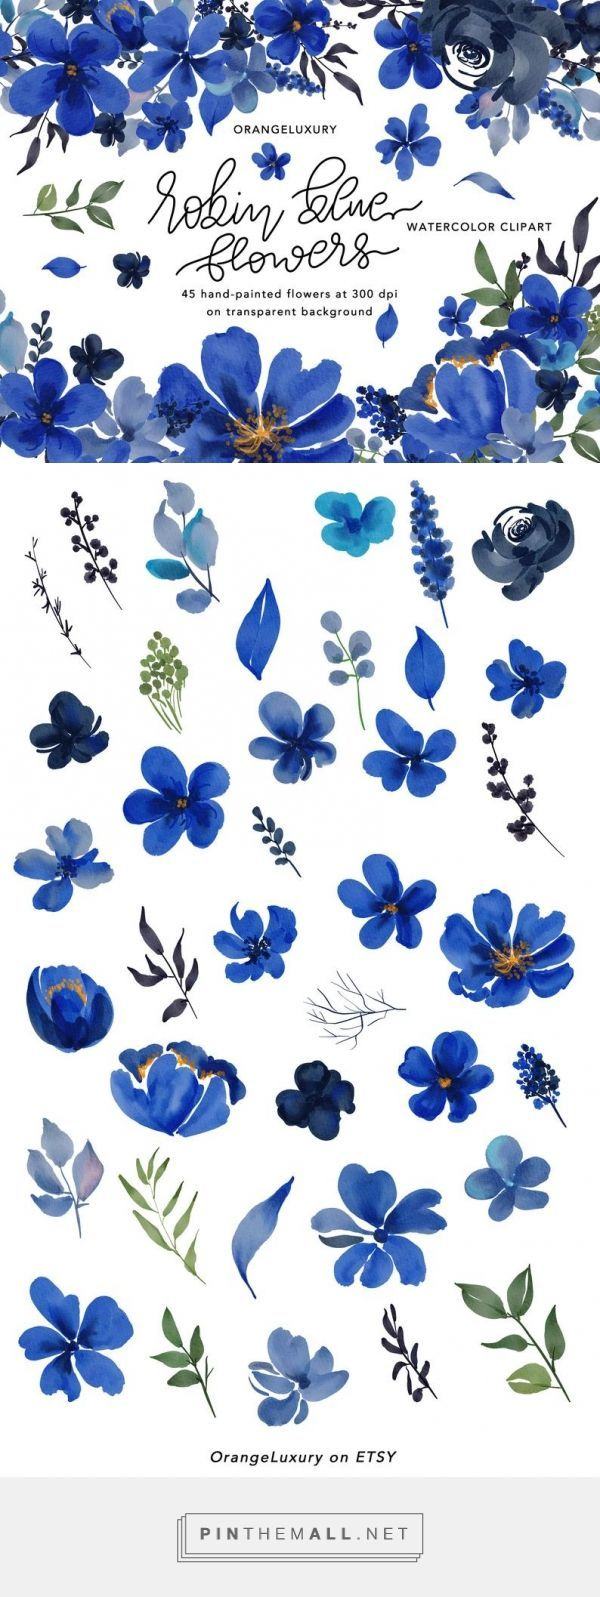 Watercolor Wreath Indigo Blue Flowers Navy Blue Flower Clipart Wedding Wreath Clip Art Floral Wreath Png Leaves Branch In 2021 Blue Flower Painting Floral Wreath Watercolor Wreath Watercolor